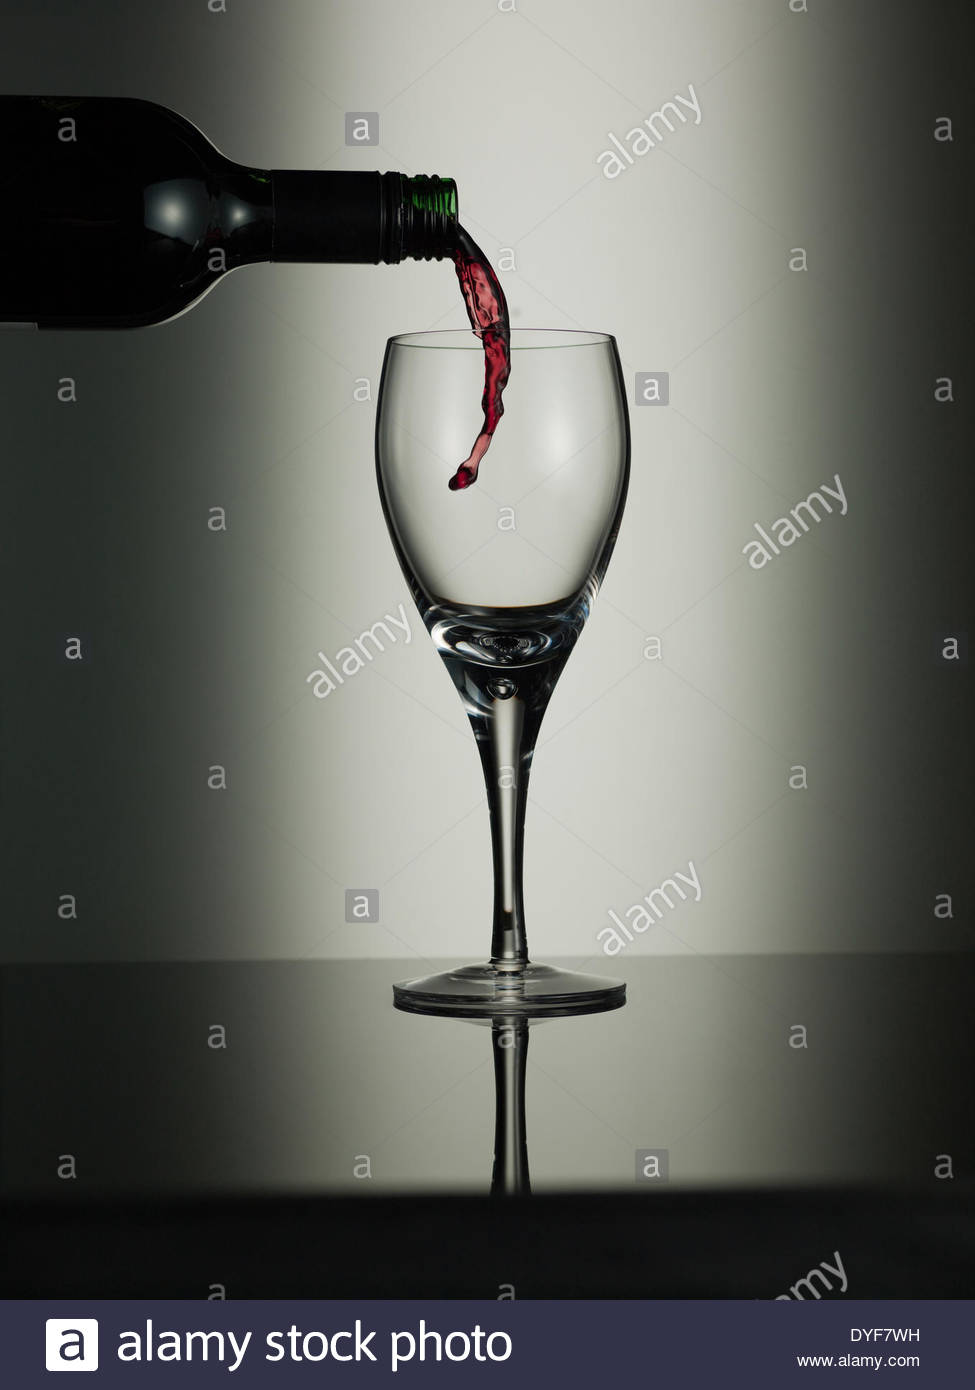 Red wine pouring into glass - Stock Image